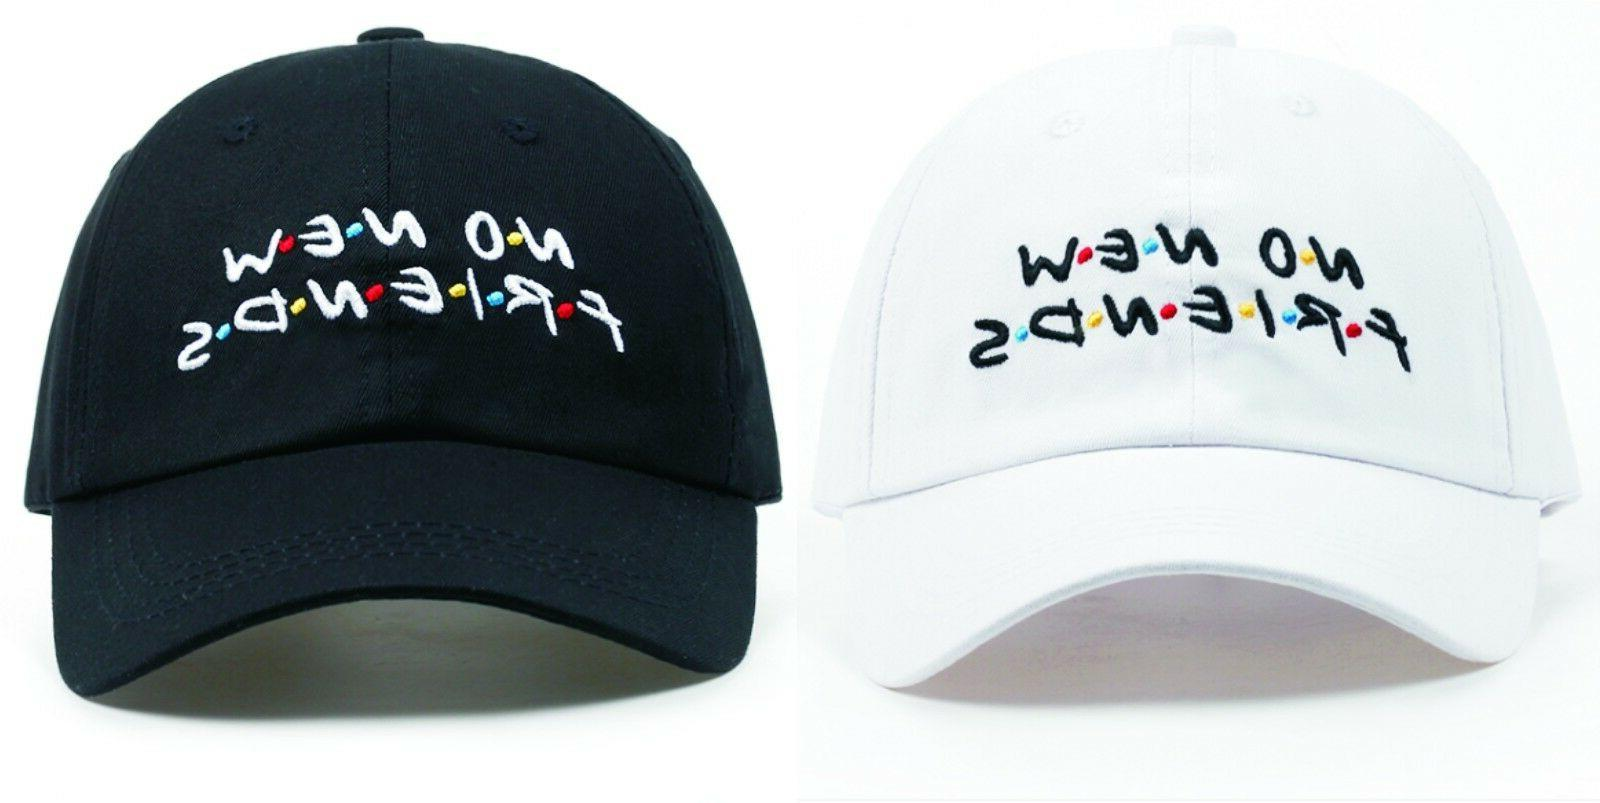 new no new friends embroidery dad hat